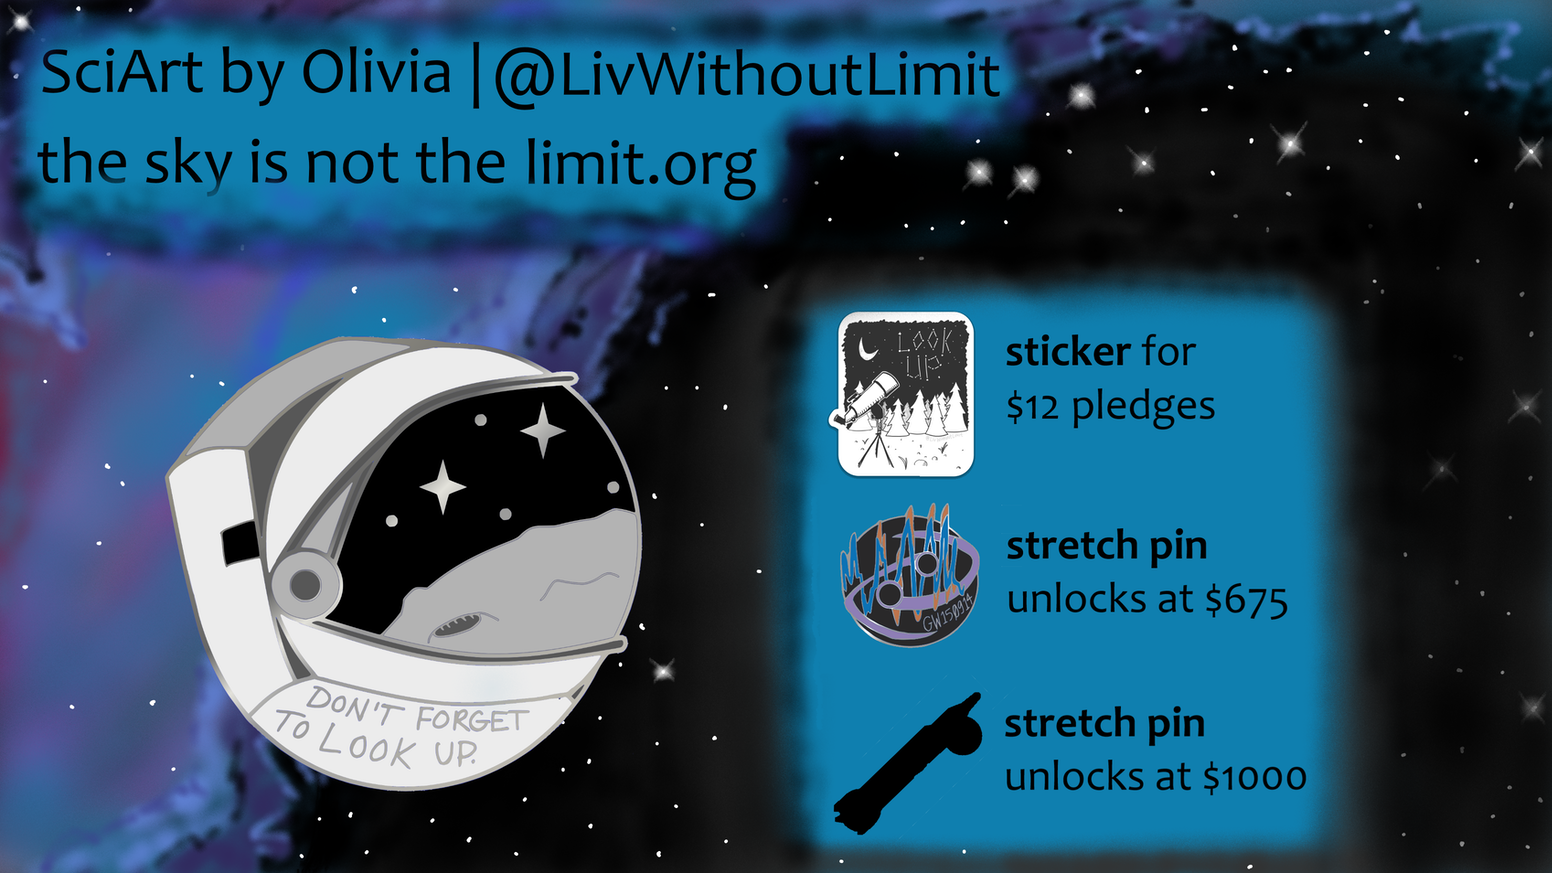 A science-inspired art project, bringing the wonder of space and astronomy to a soft enamel pin